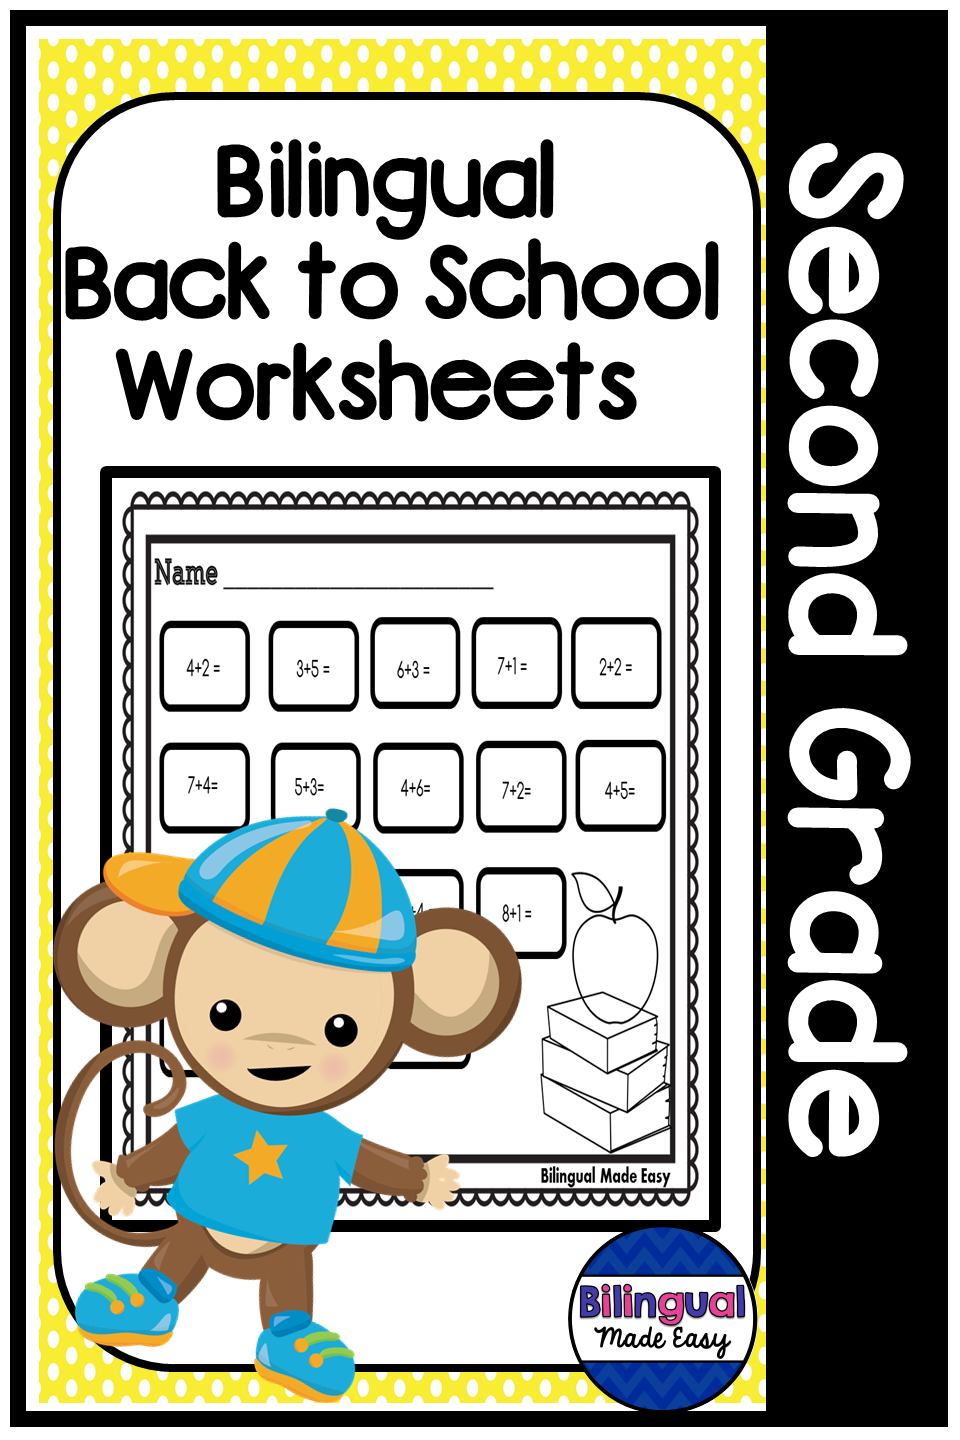 Bilingual Second Grade Back To School Worksheets In English Spanish Dual Language Classroom Back To School Worksheets School Worksheets [ 1440 x 960 Pixel ]